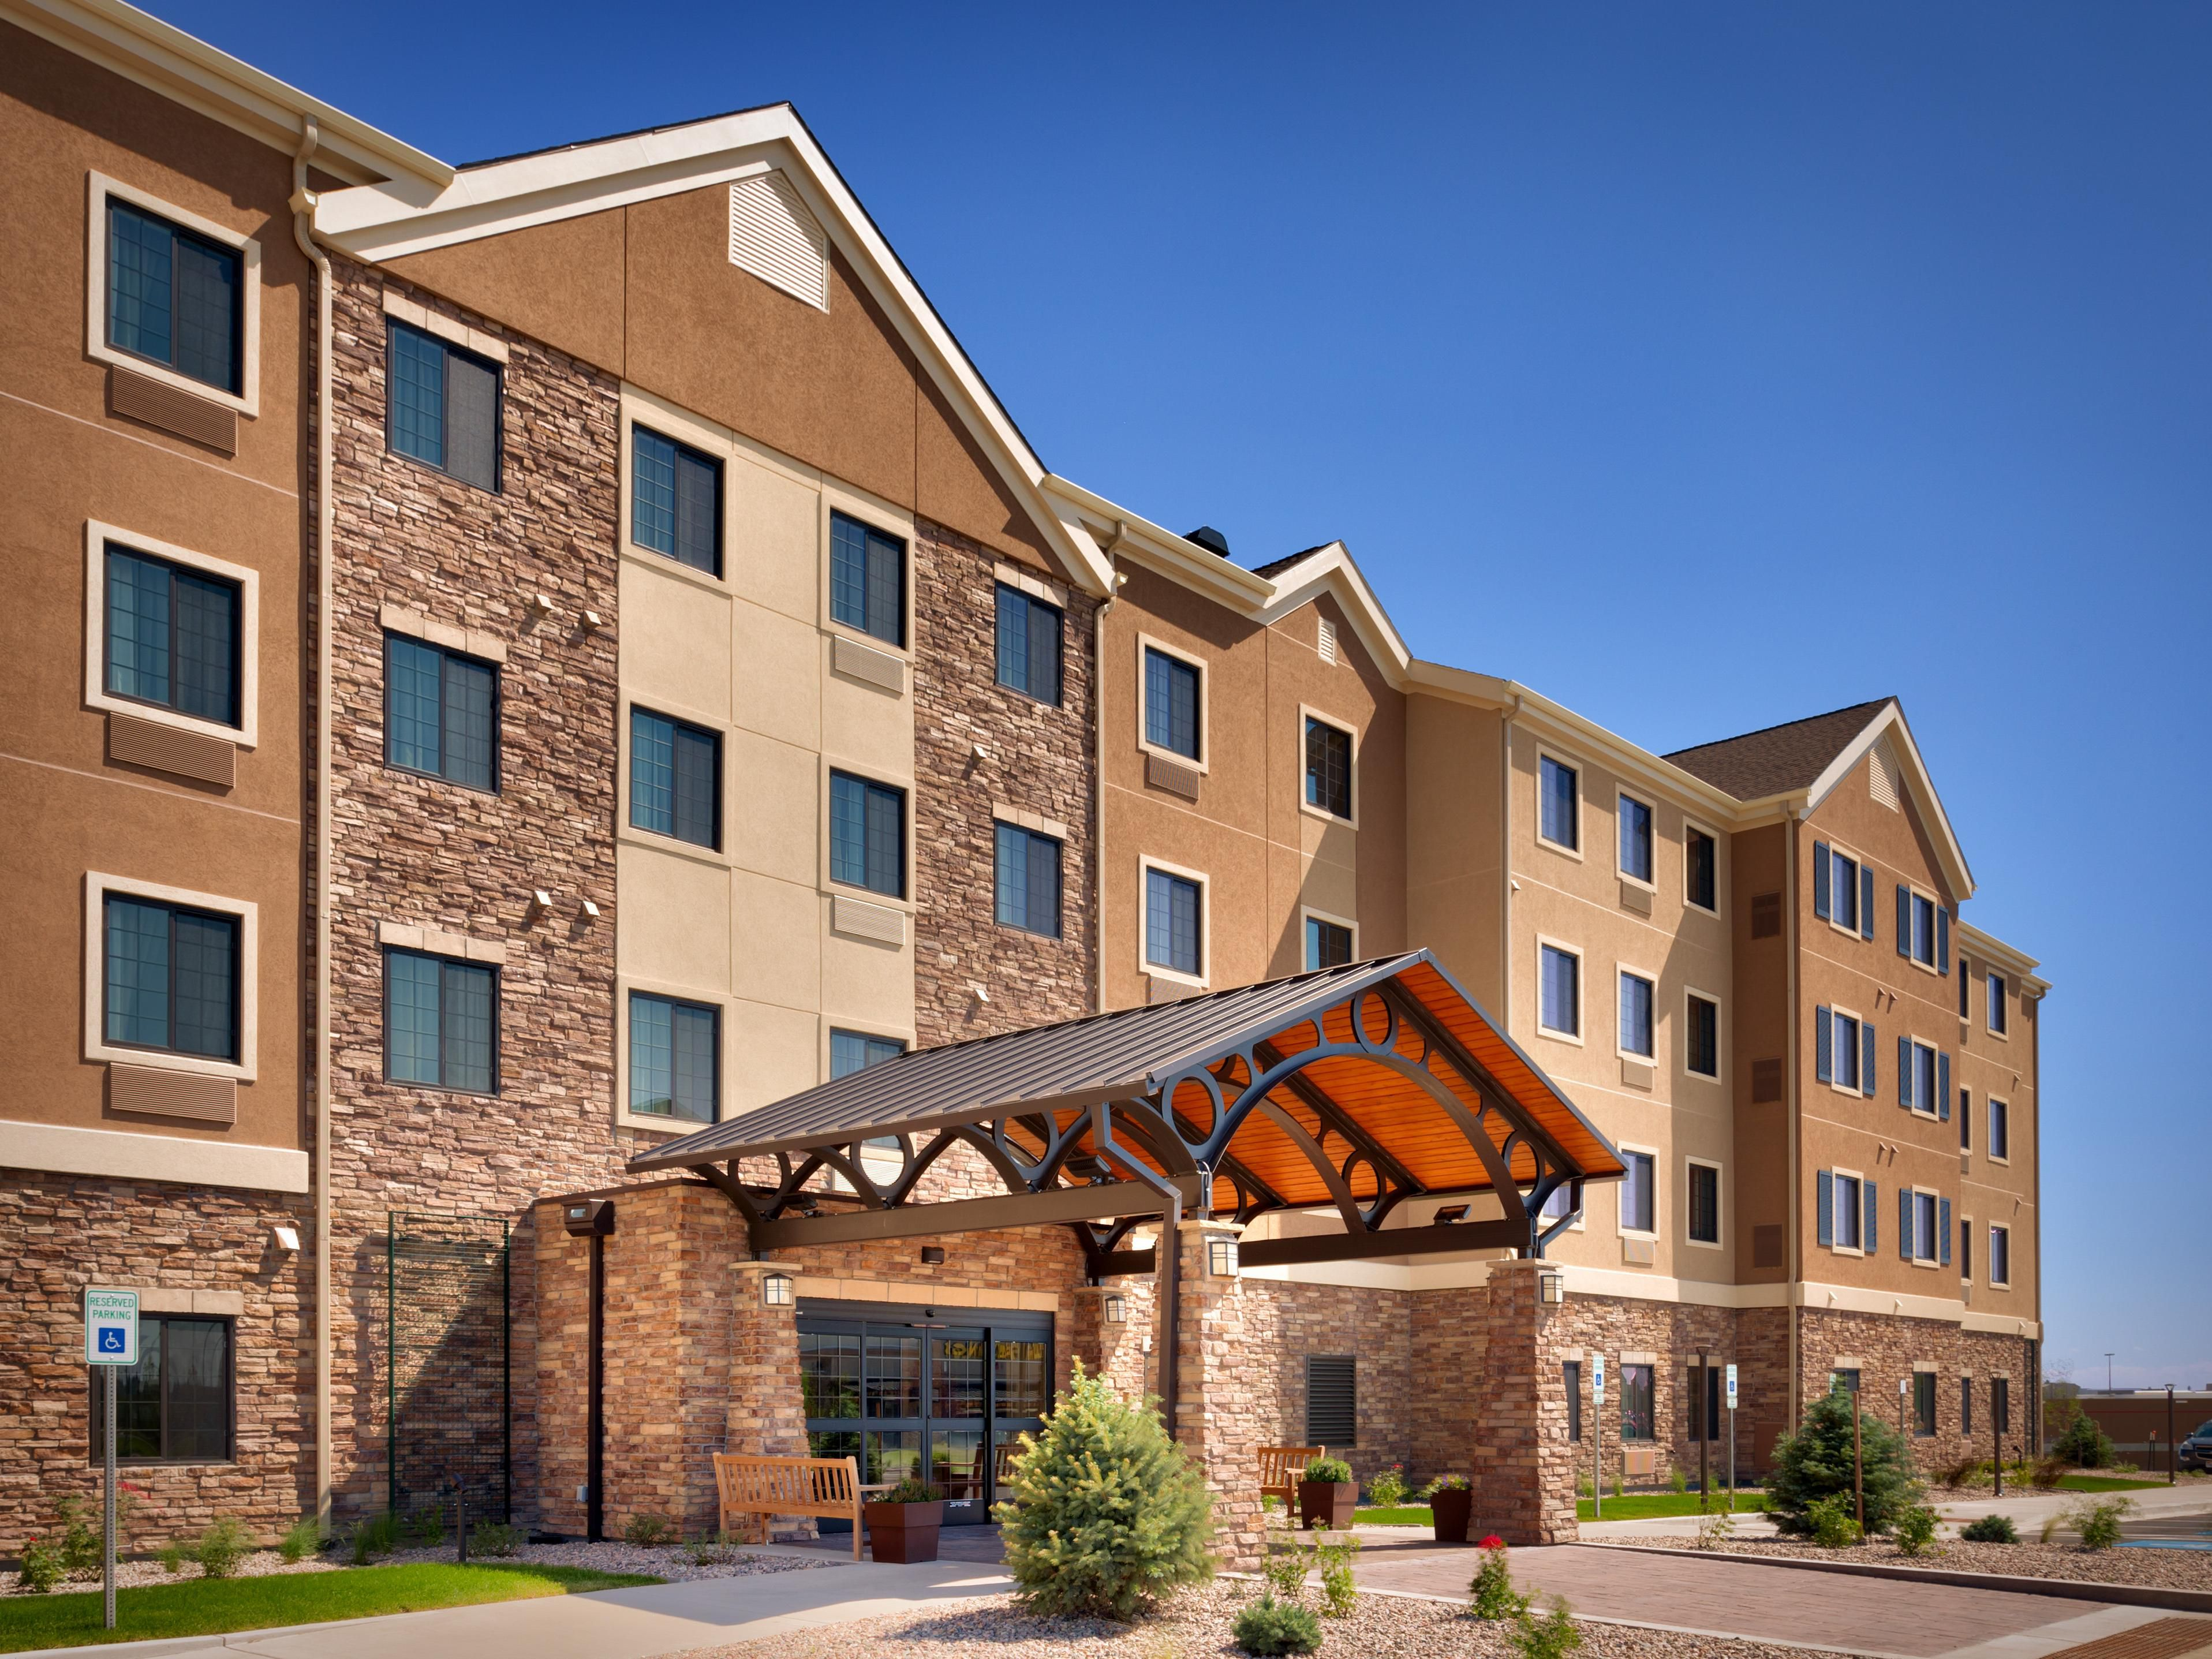 Staybridge Suites Cheyenne Extended Stay Hotel In United States With Full Kitchen